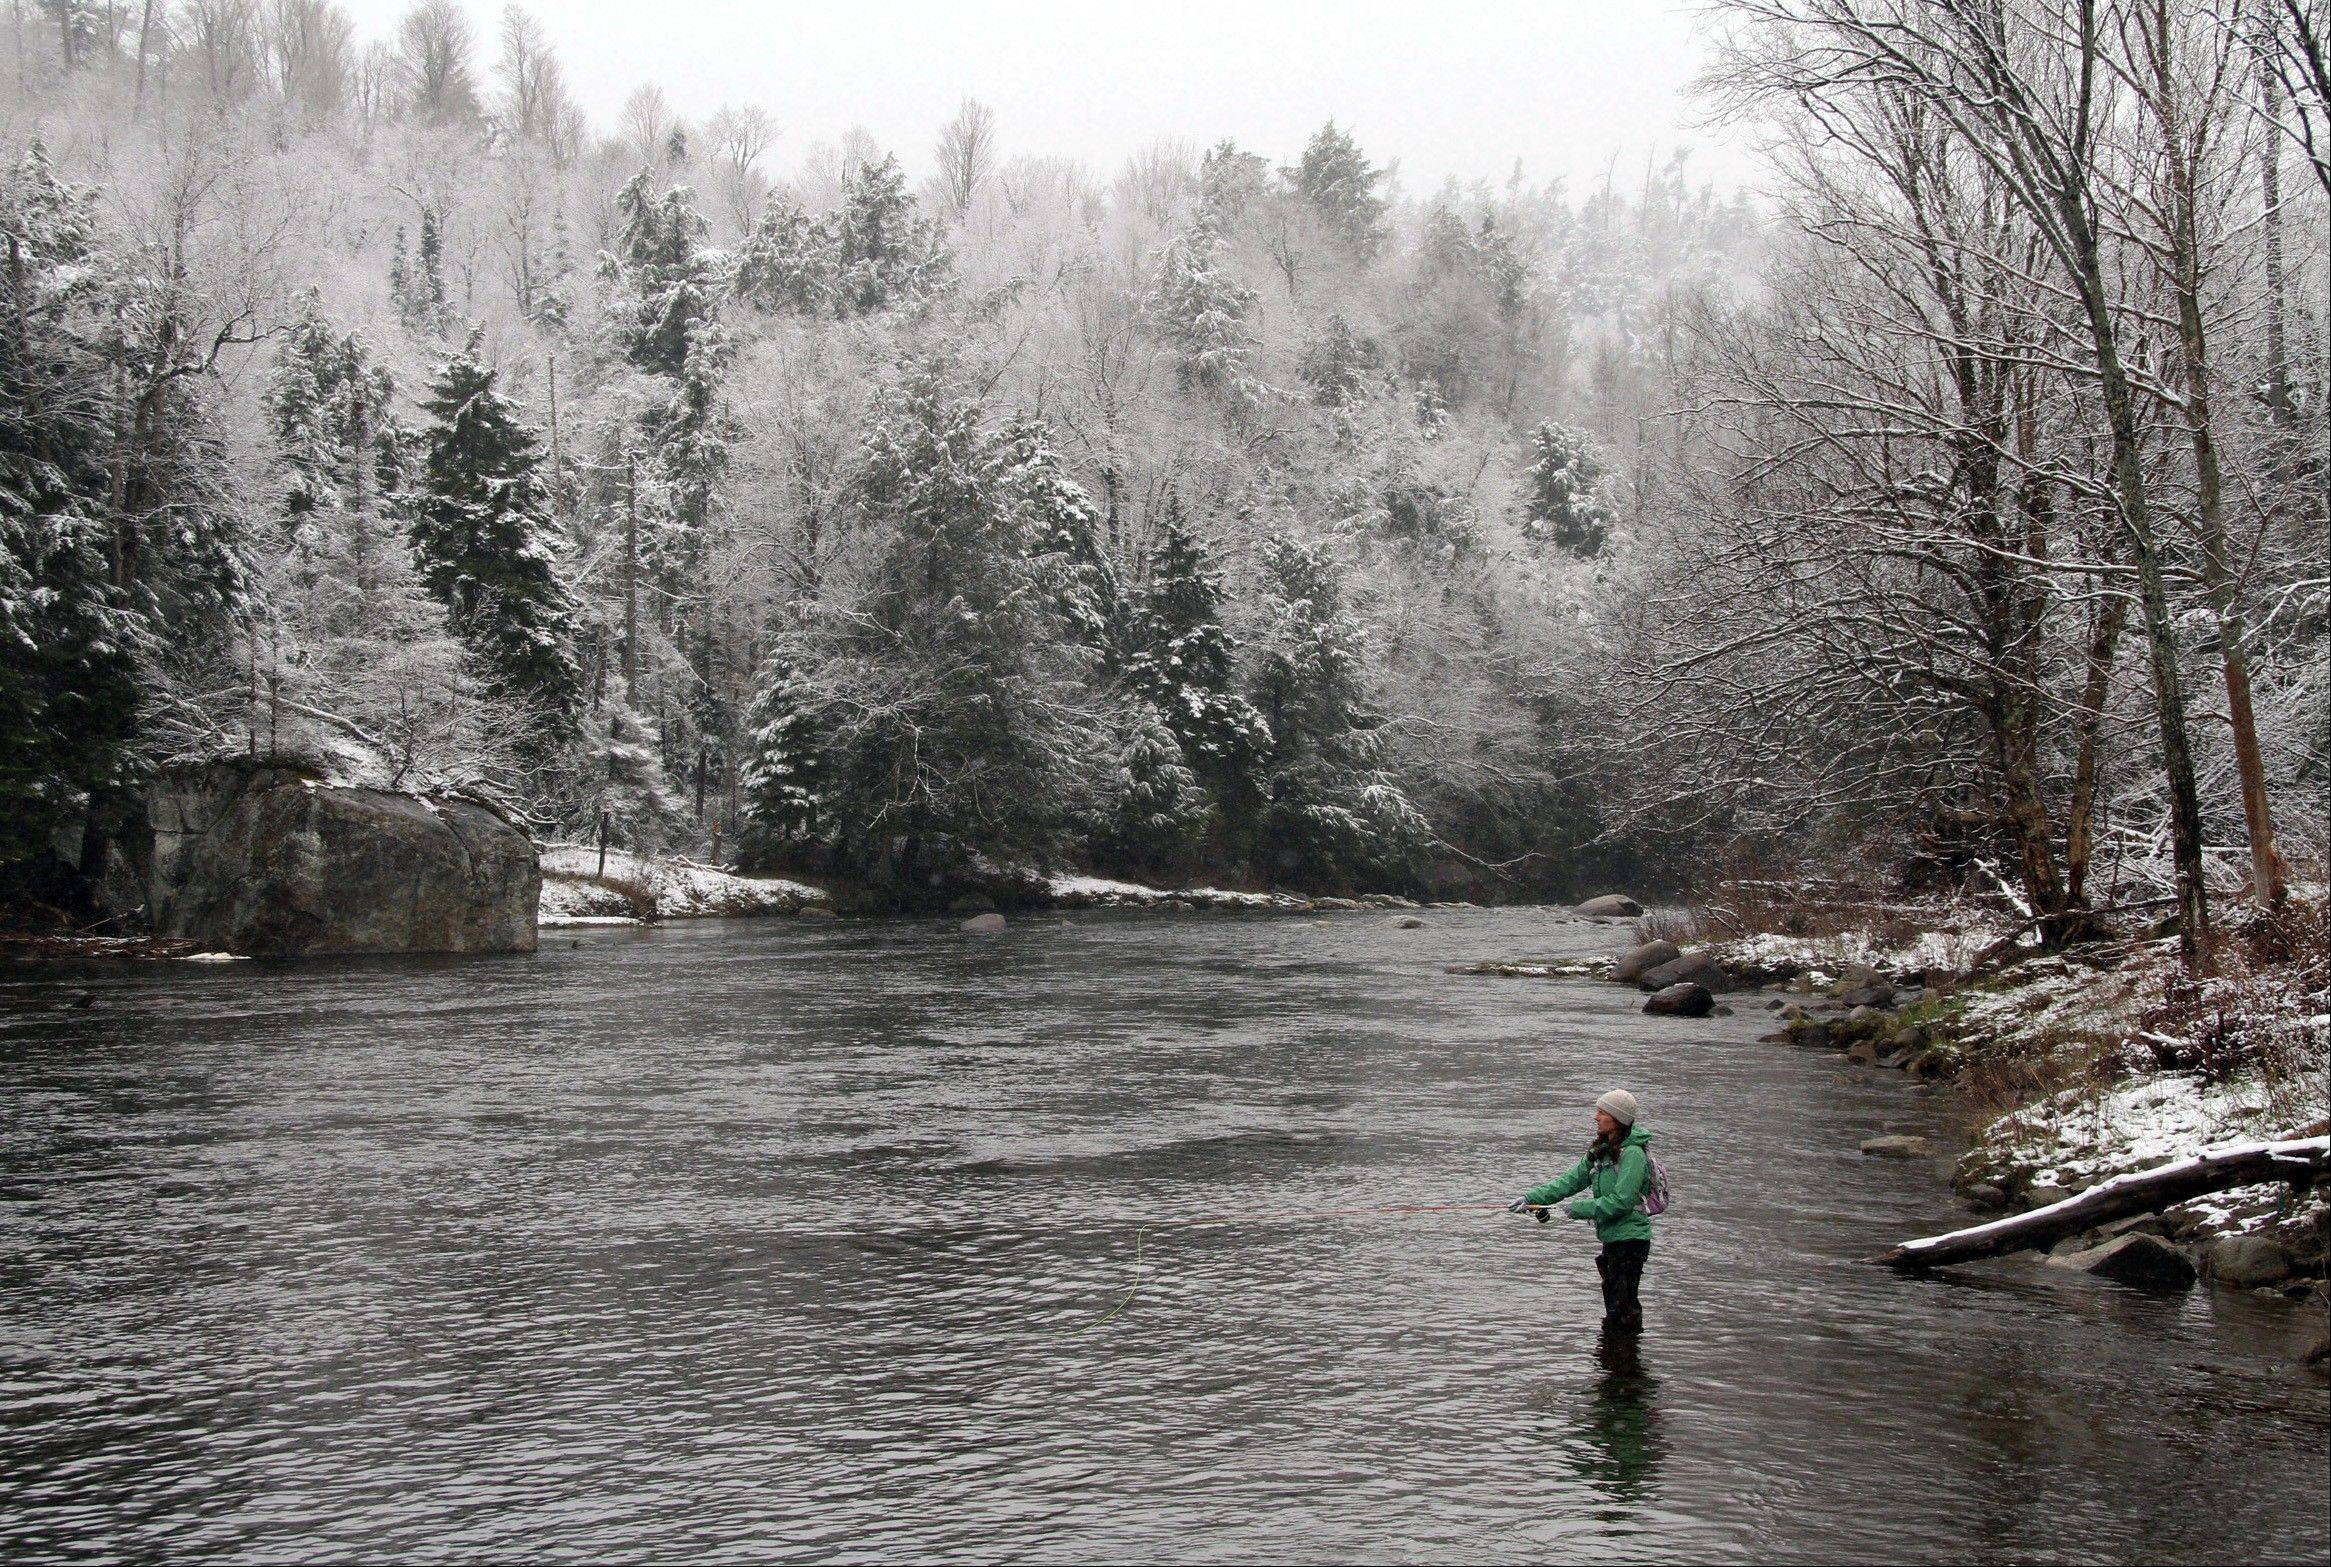 A woman fishes on the West Branch of the AuSable River in Wilmington, N.Y., after a snowfall on Sunday, April 22, 2012. A spring nor'easter along the East Coast on Sunday is expected to bring rain and heavy winds and even snow in some places as it strengthens into early Monday, a punctuation to a relatively dry stretch of weather for the Northeast.